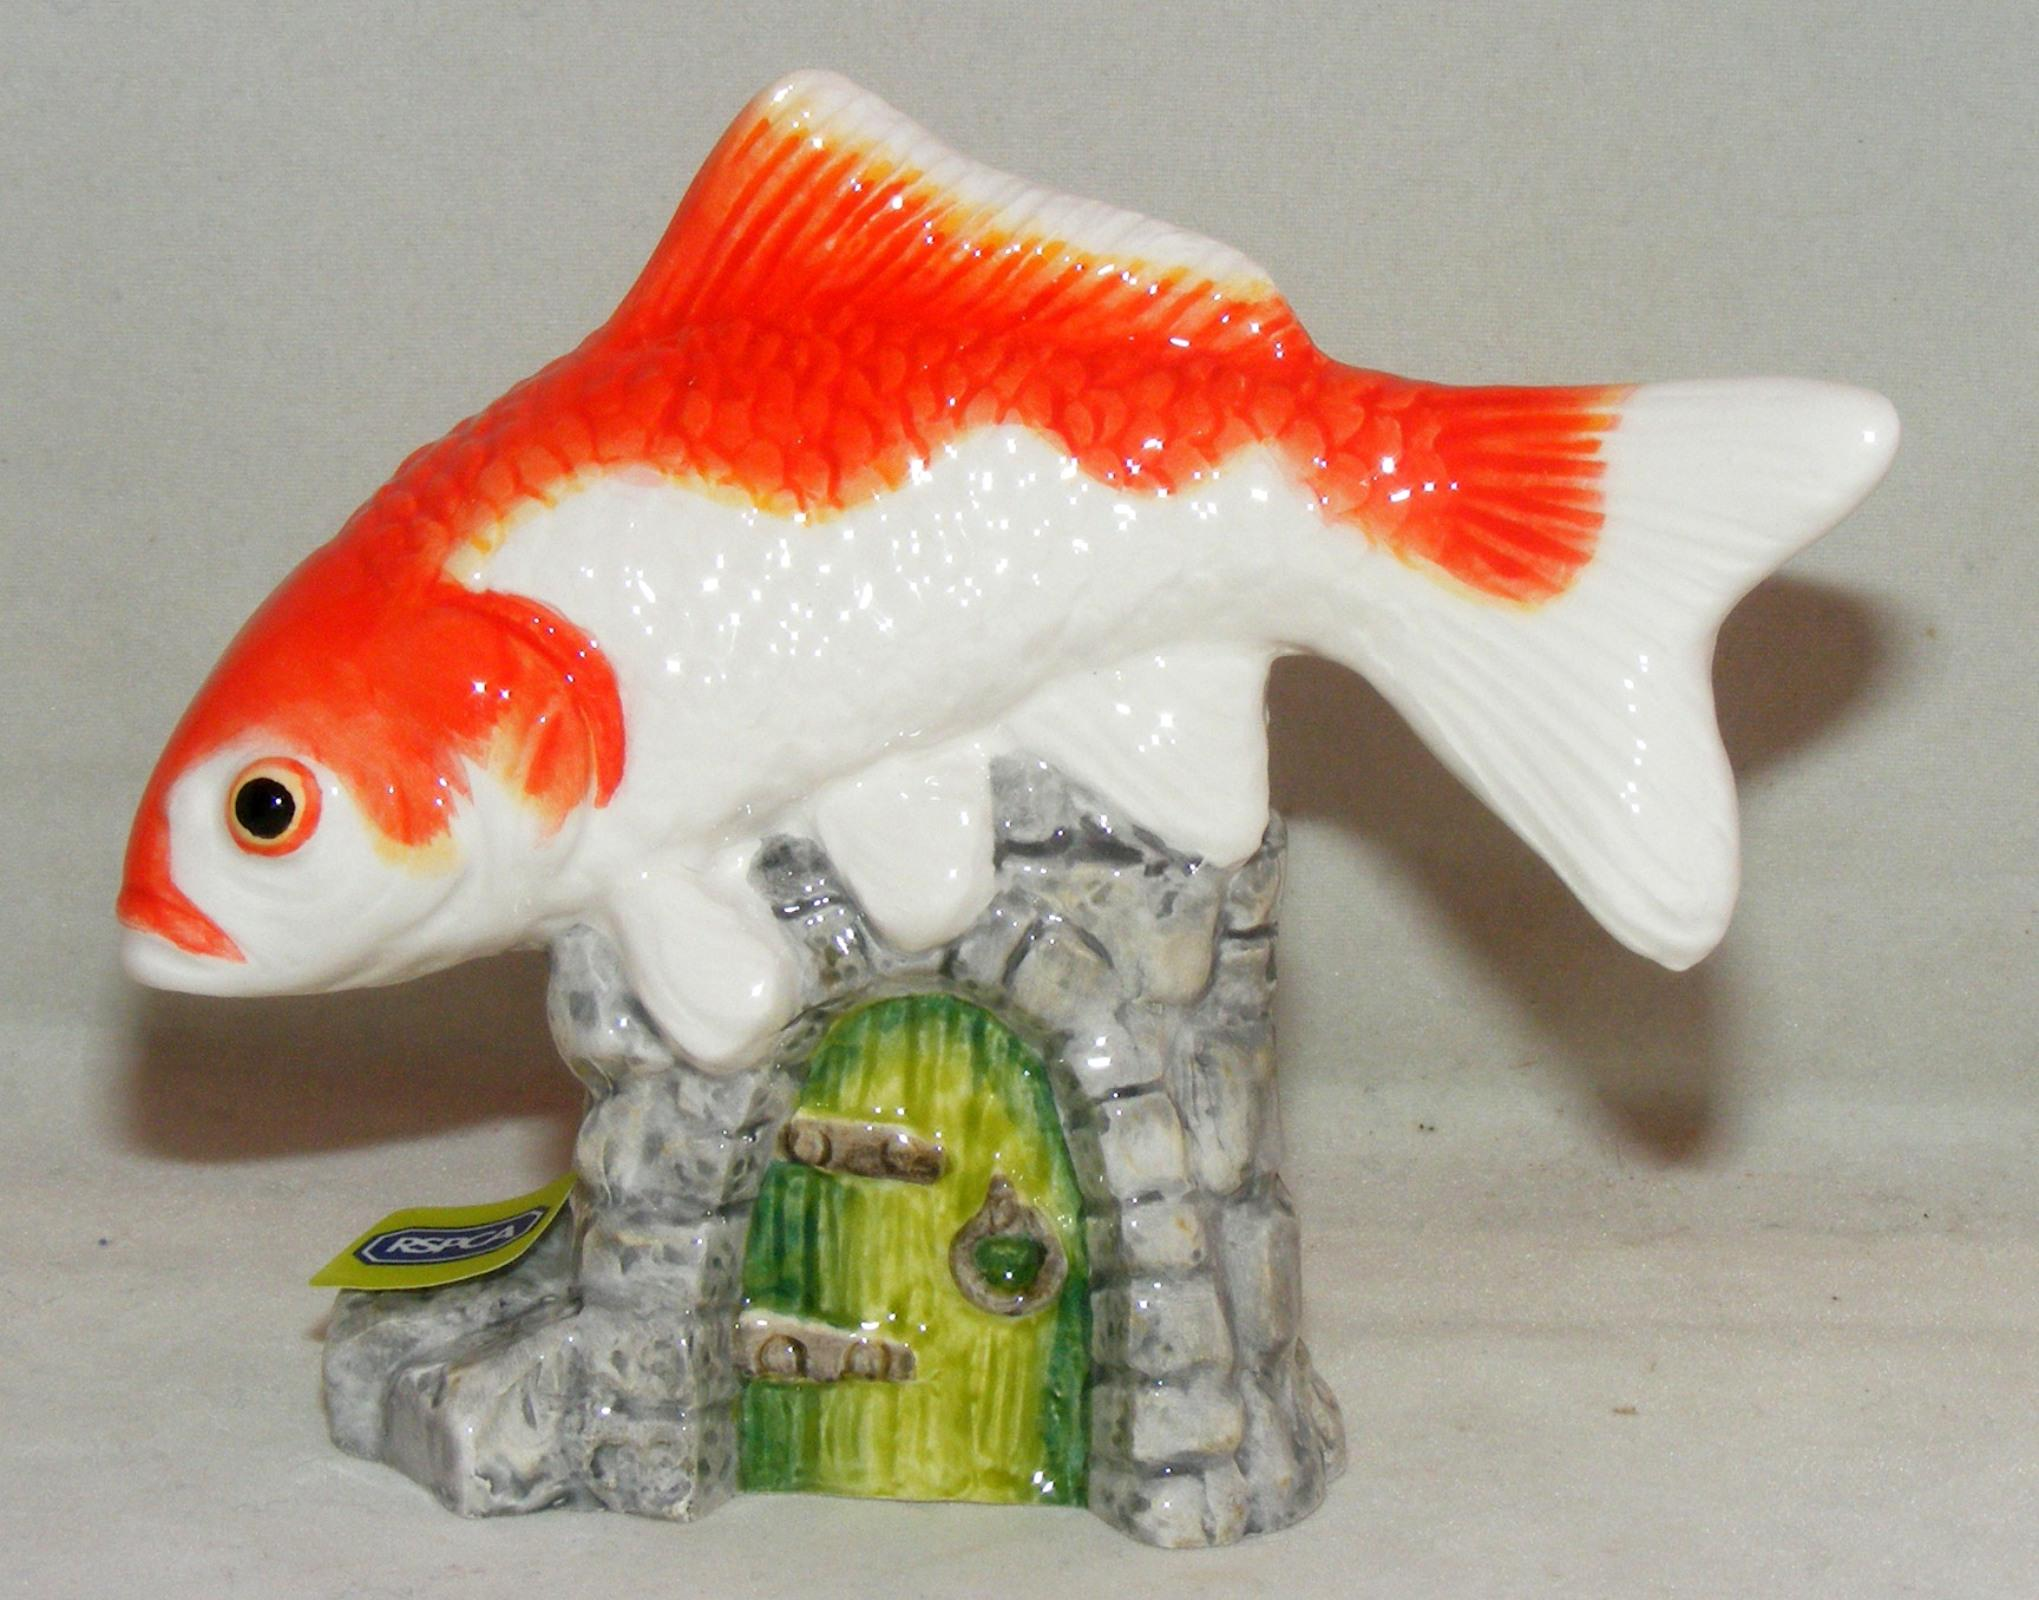 John Beswick Pet Pals Animal Figure Goldfish Orange White